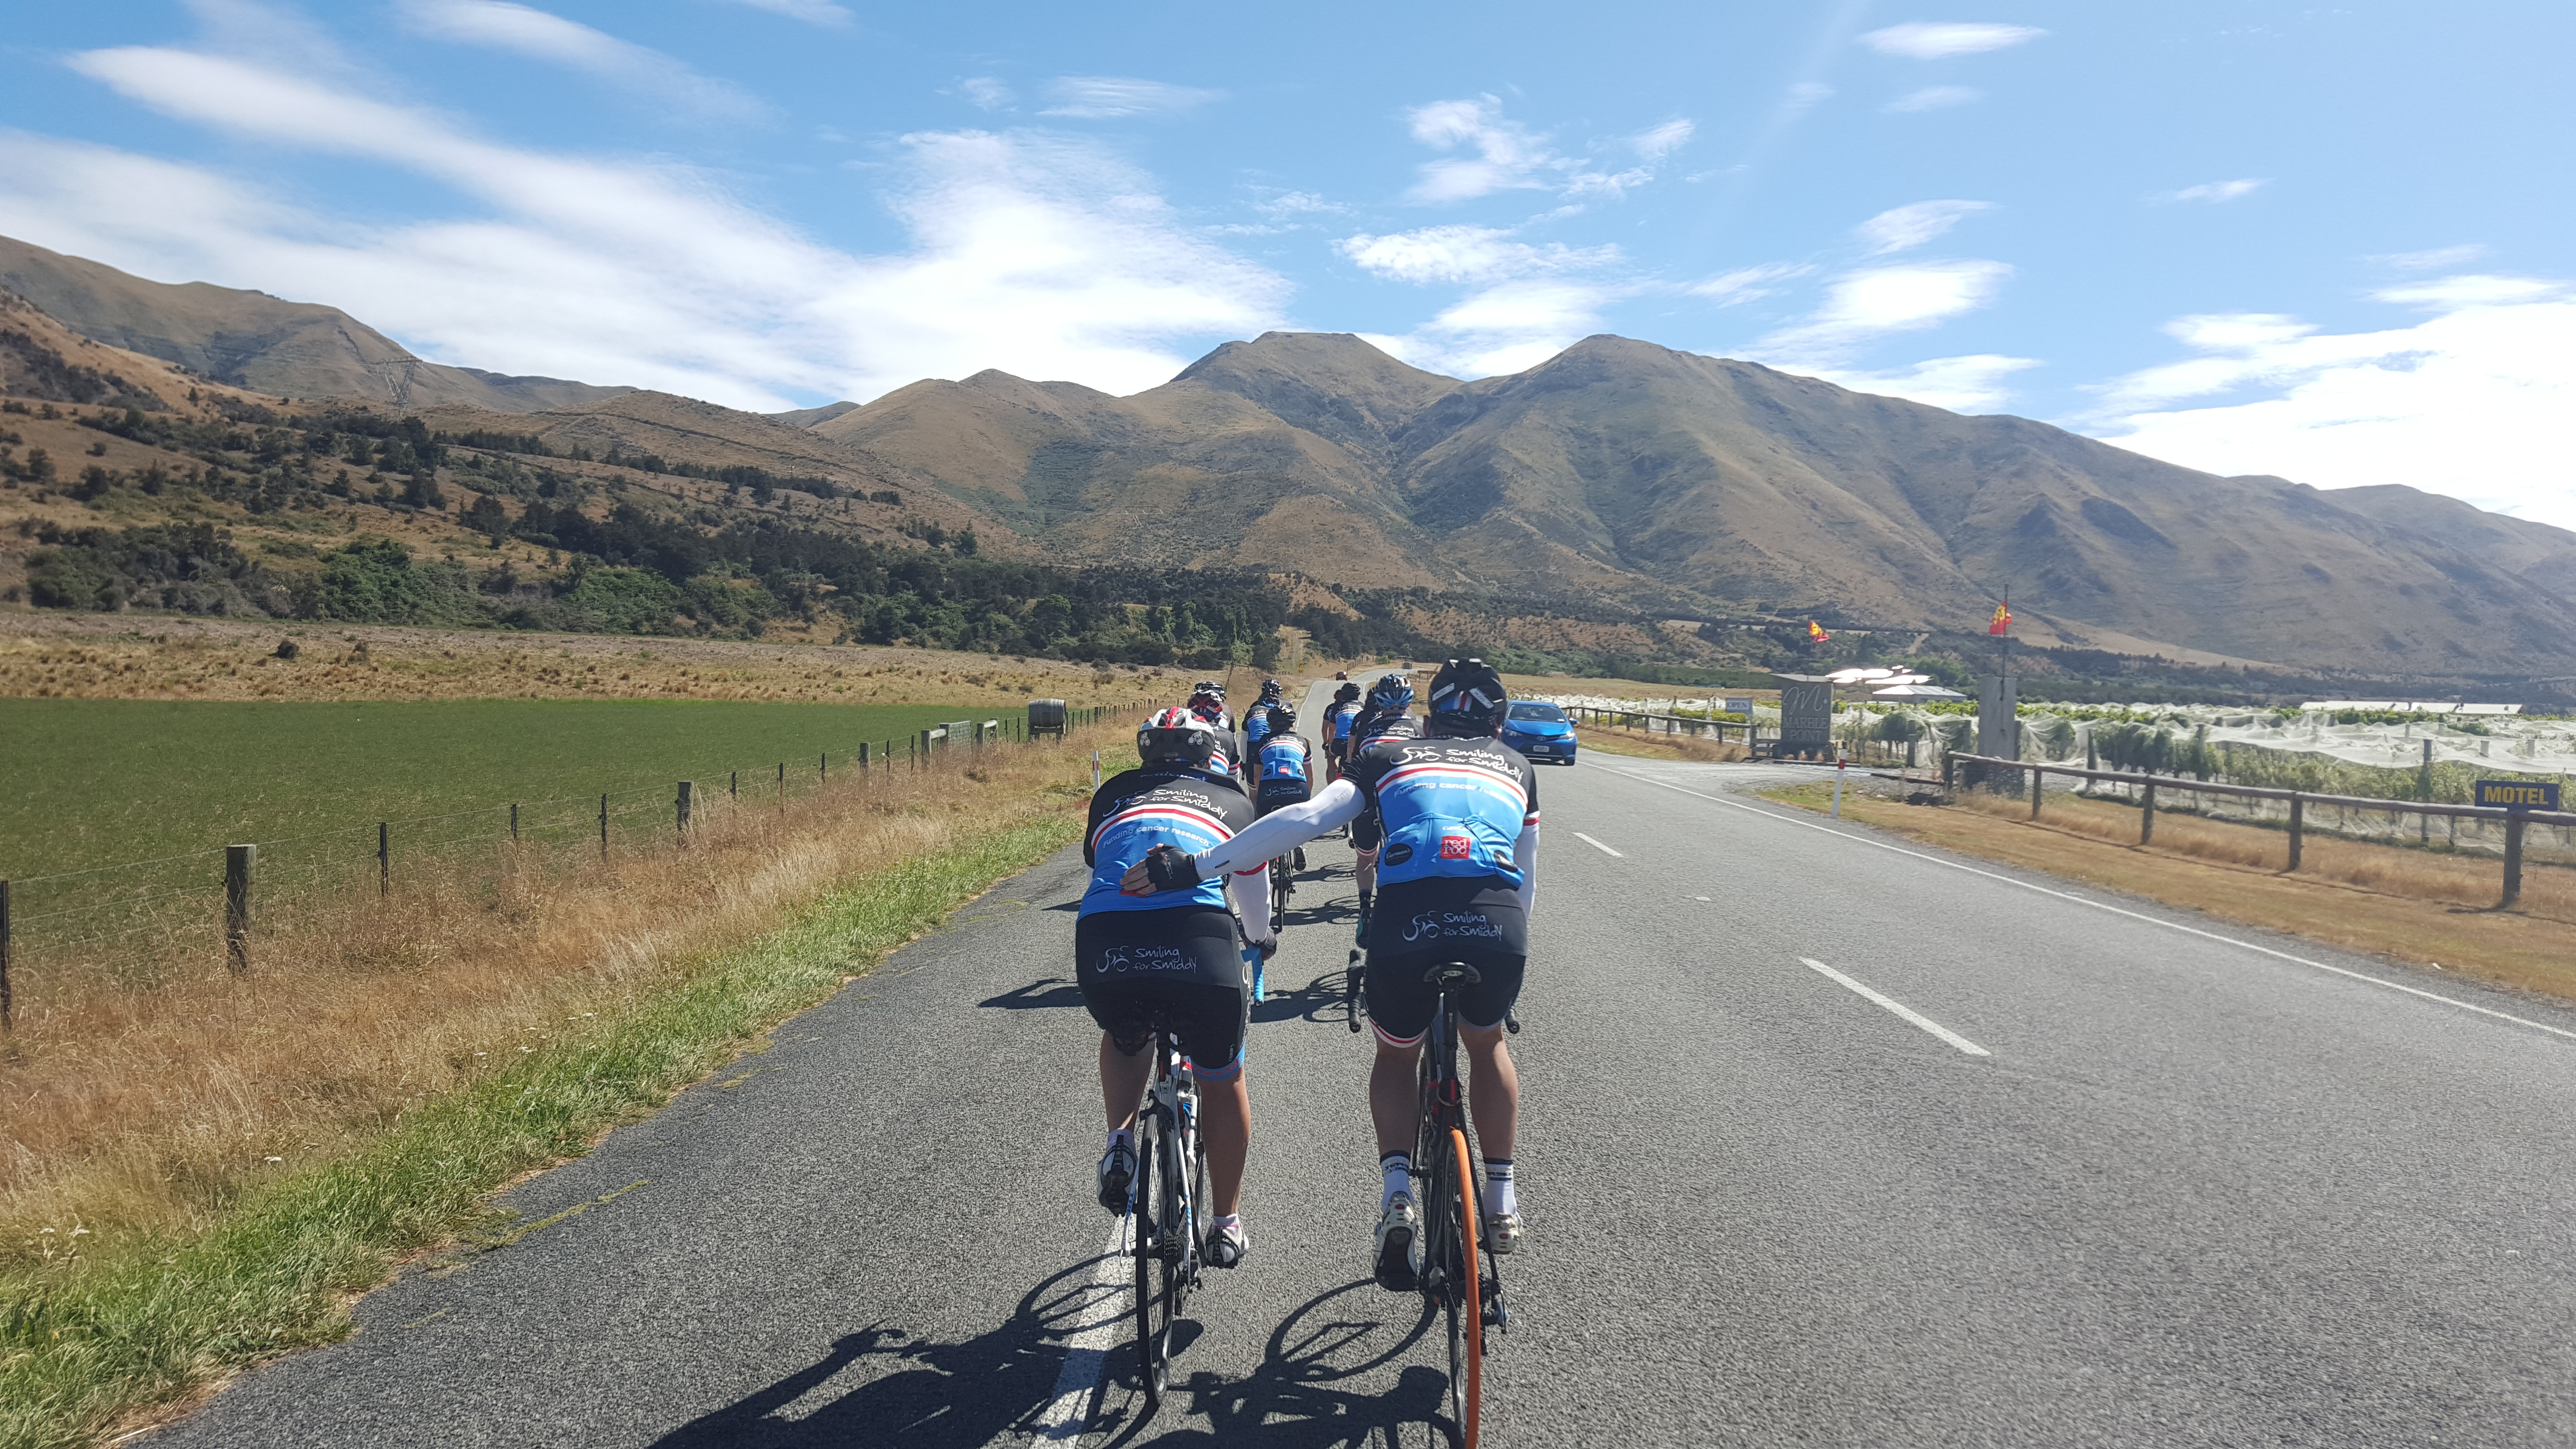 nz-2016-riders-day-1-scenery